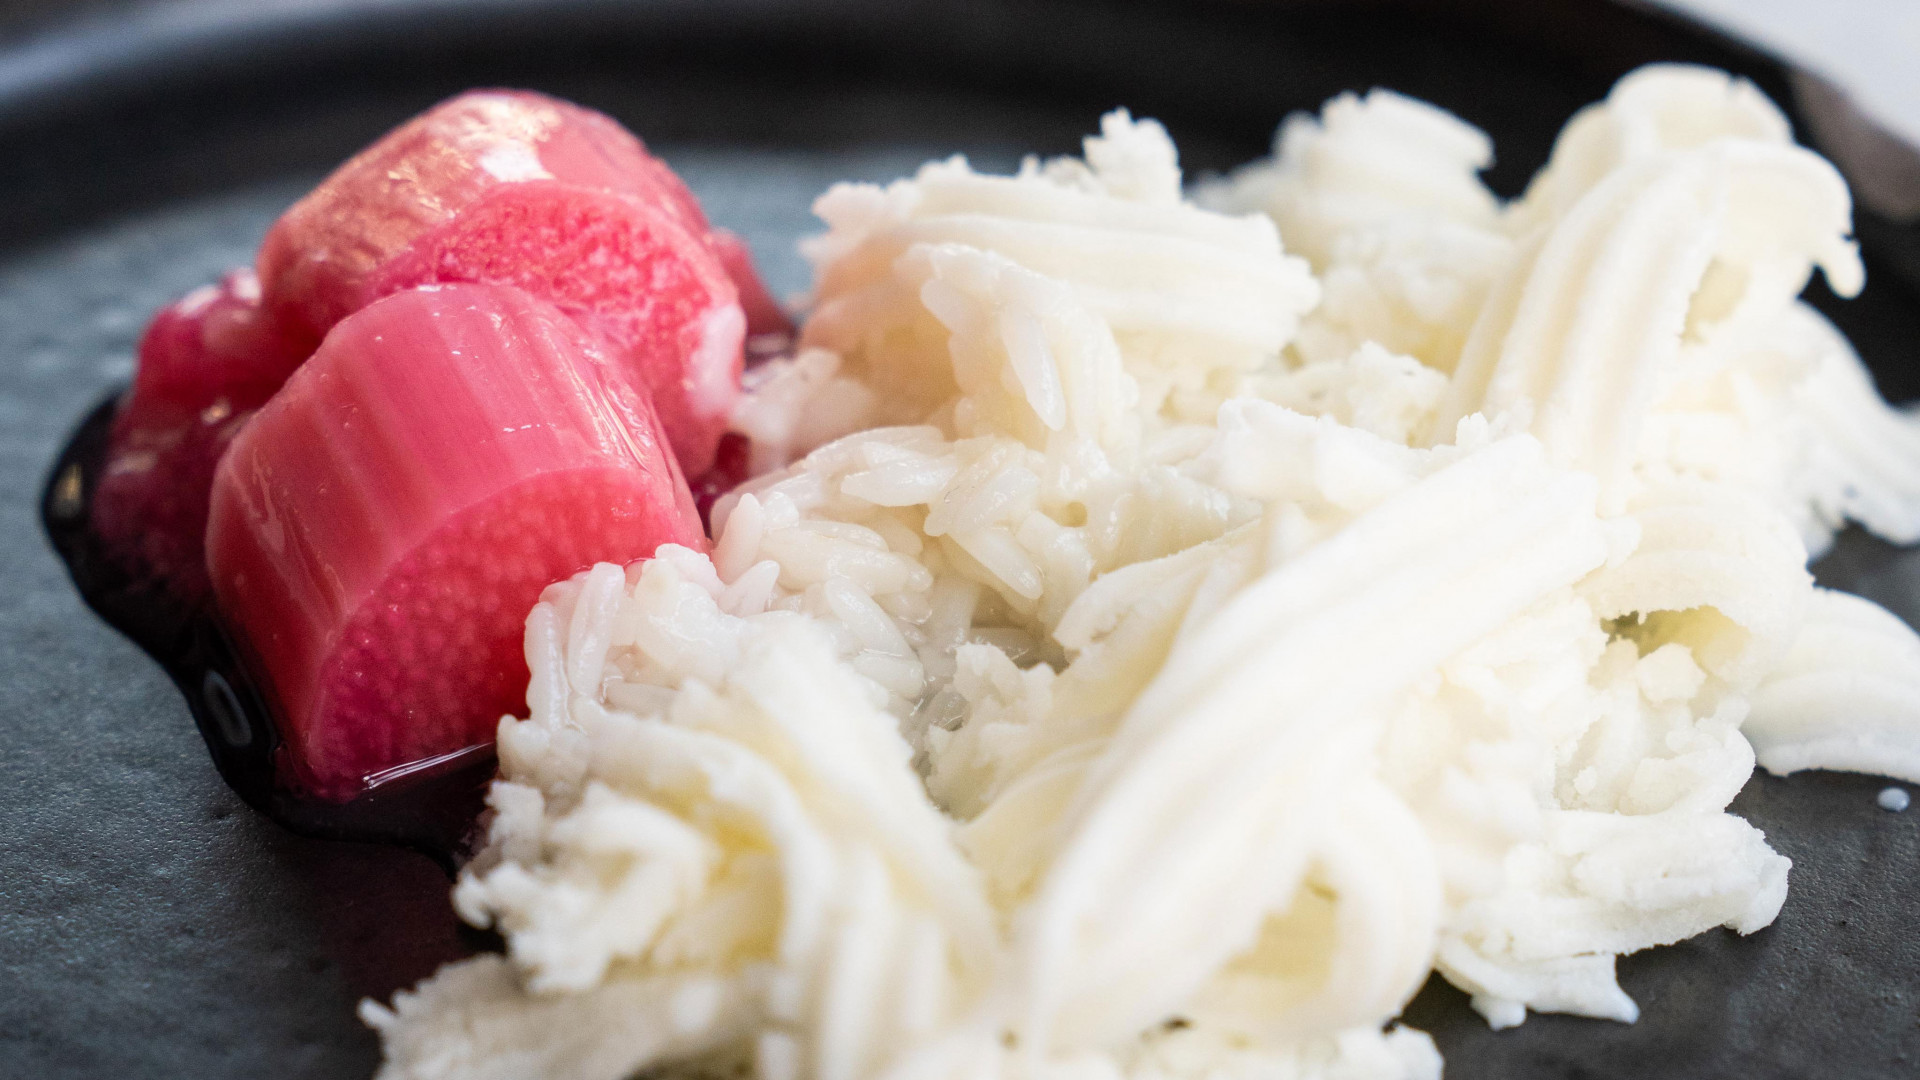 Rhubarb and fermented rice cream